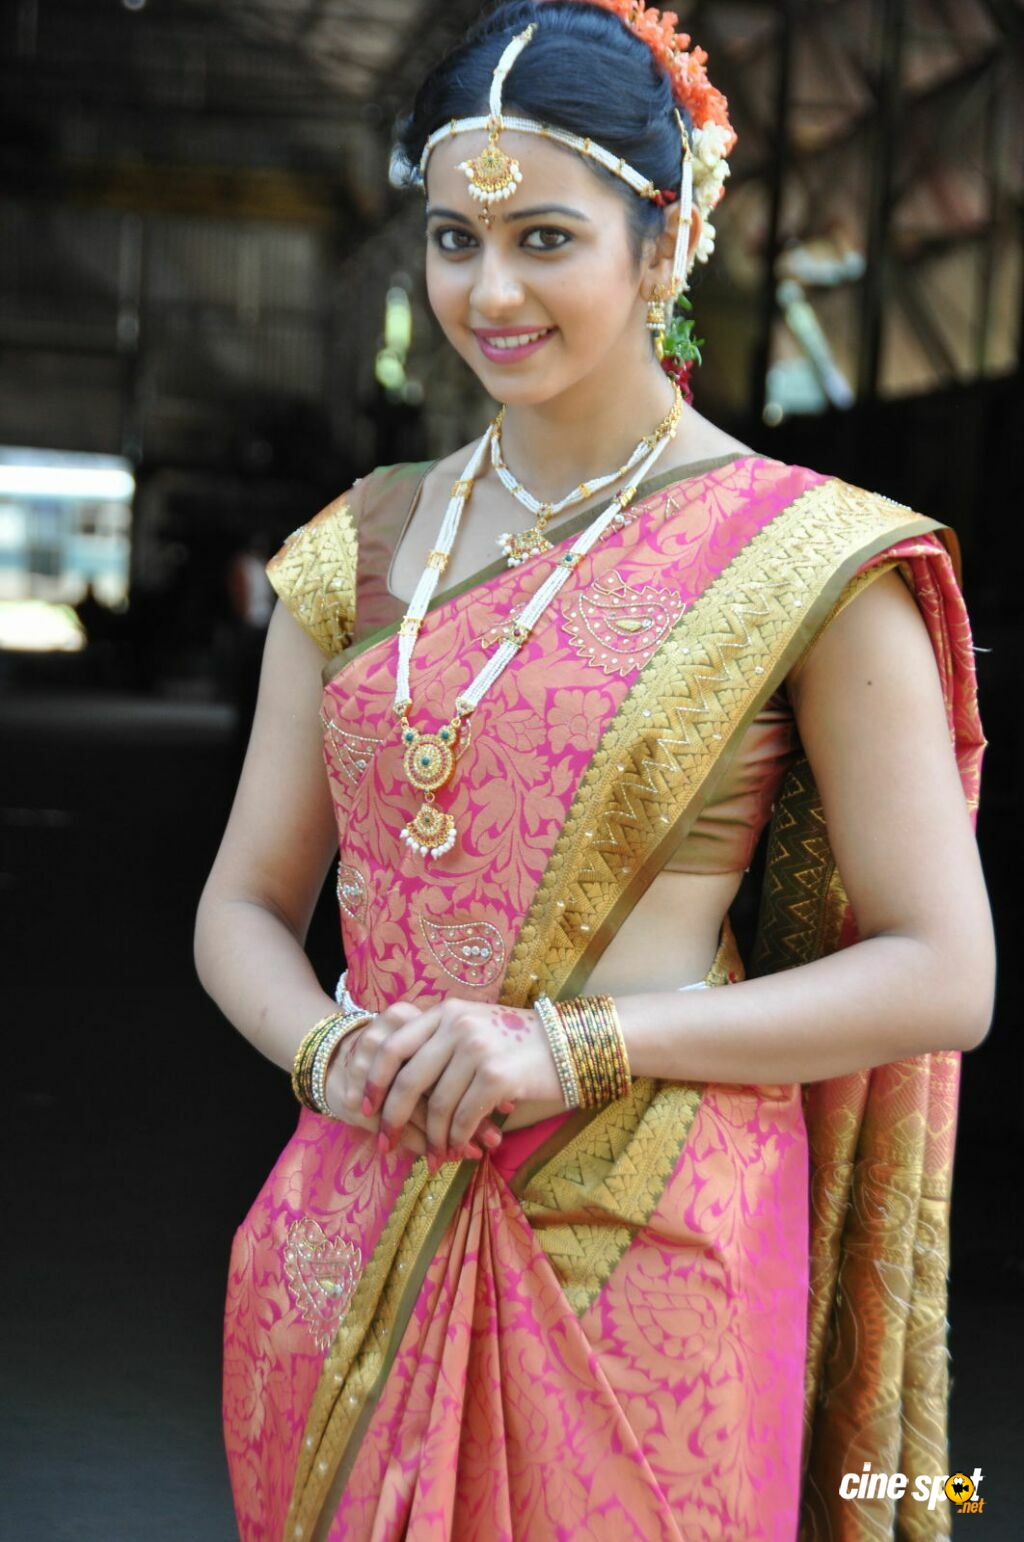 rakul preet singh hd images in saree5 -